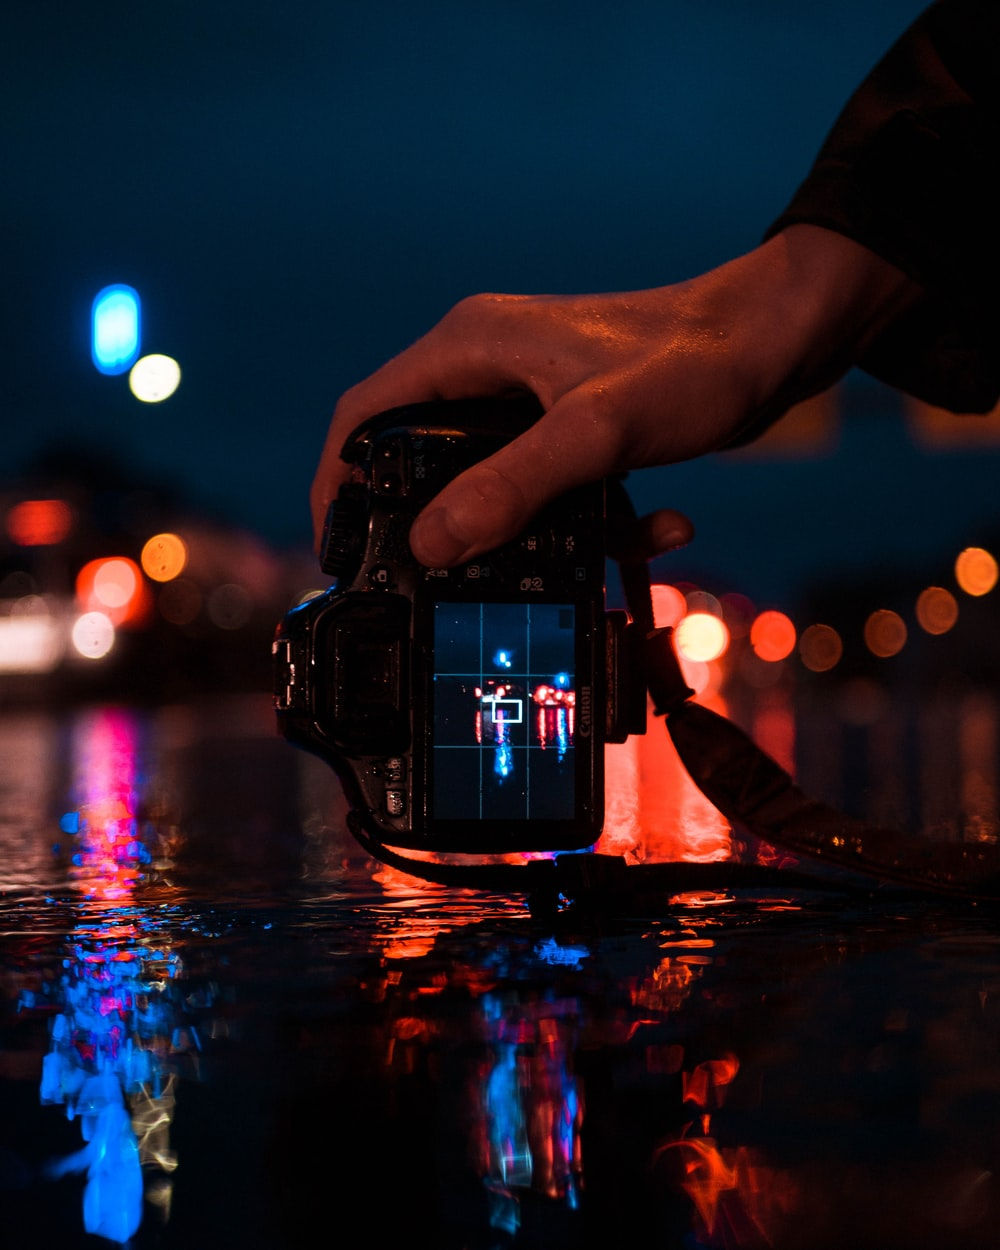 person holding black DSLR camera taking photo of LED lights